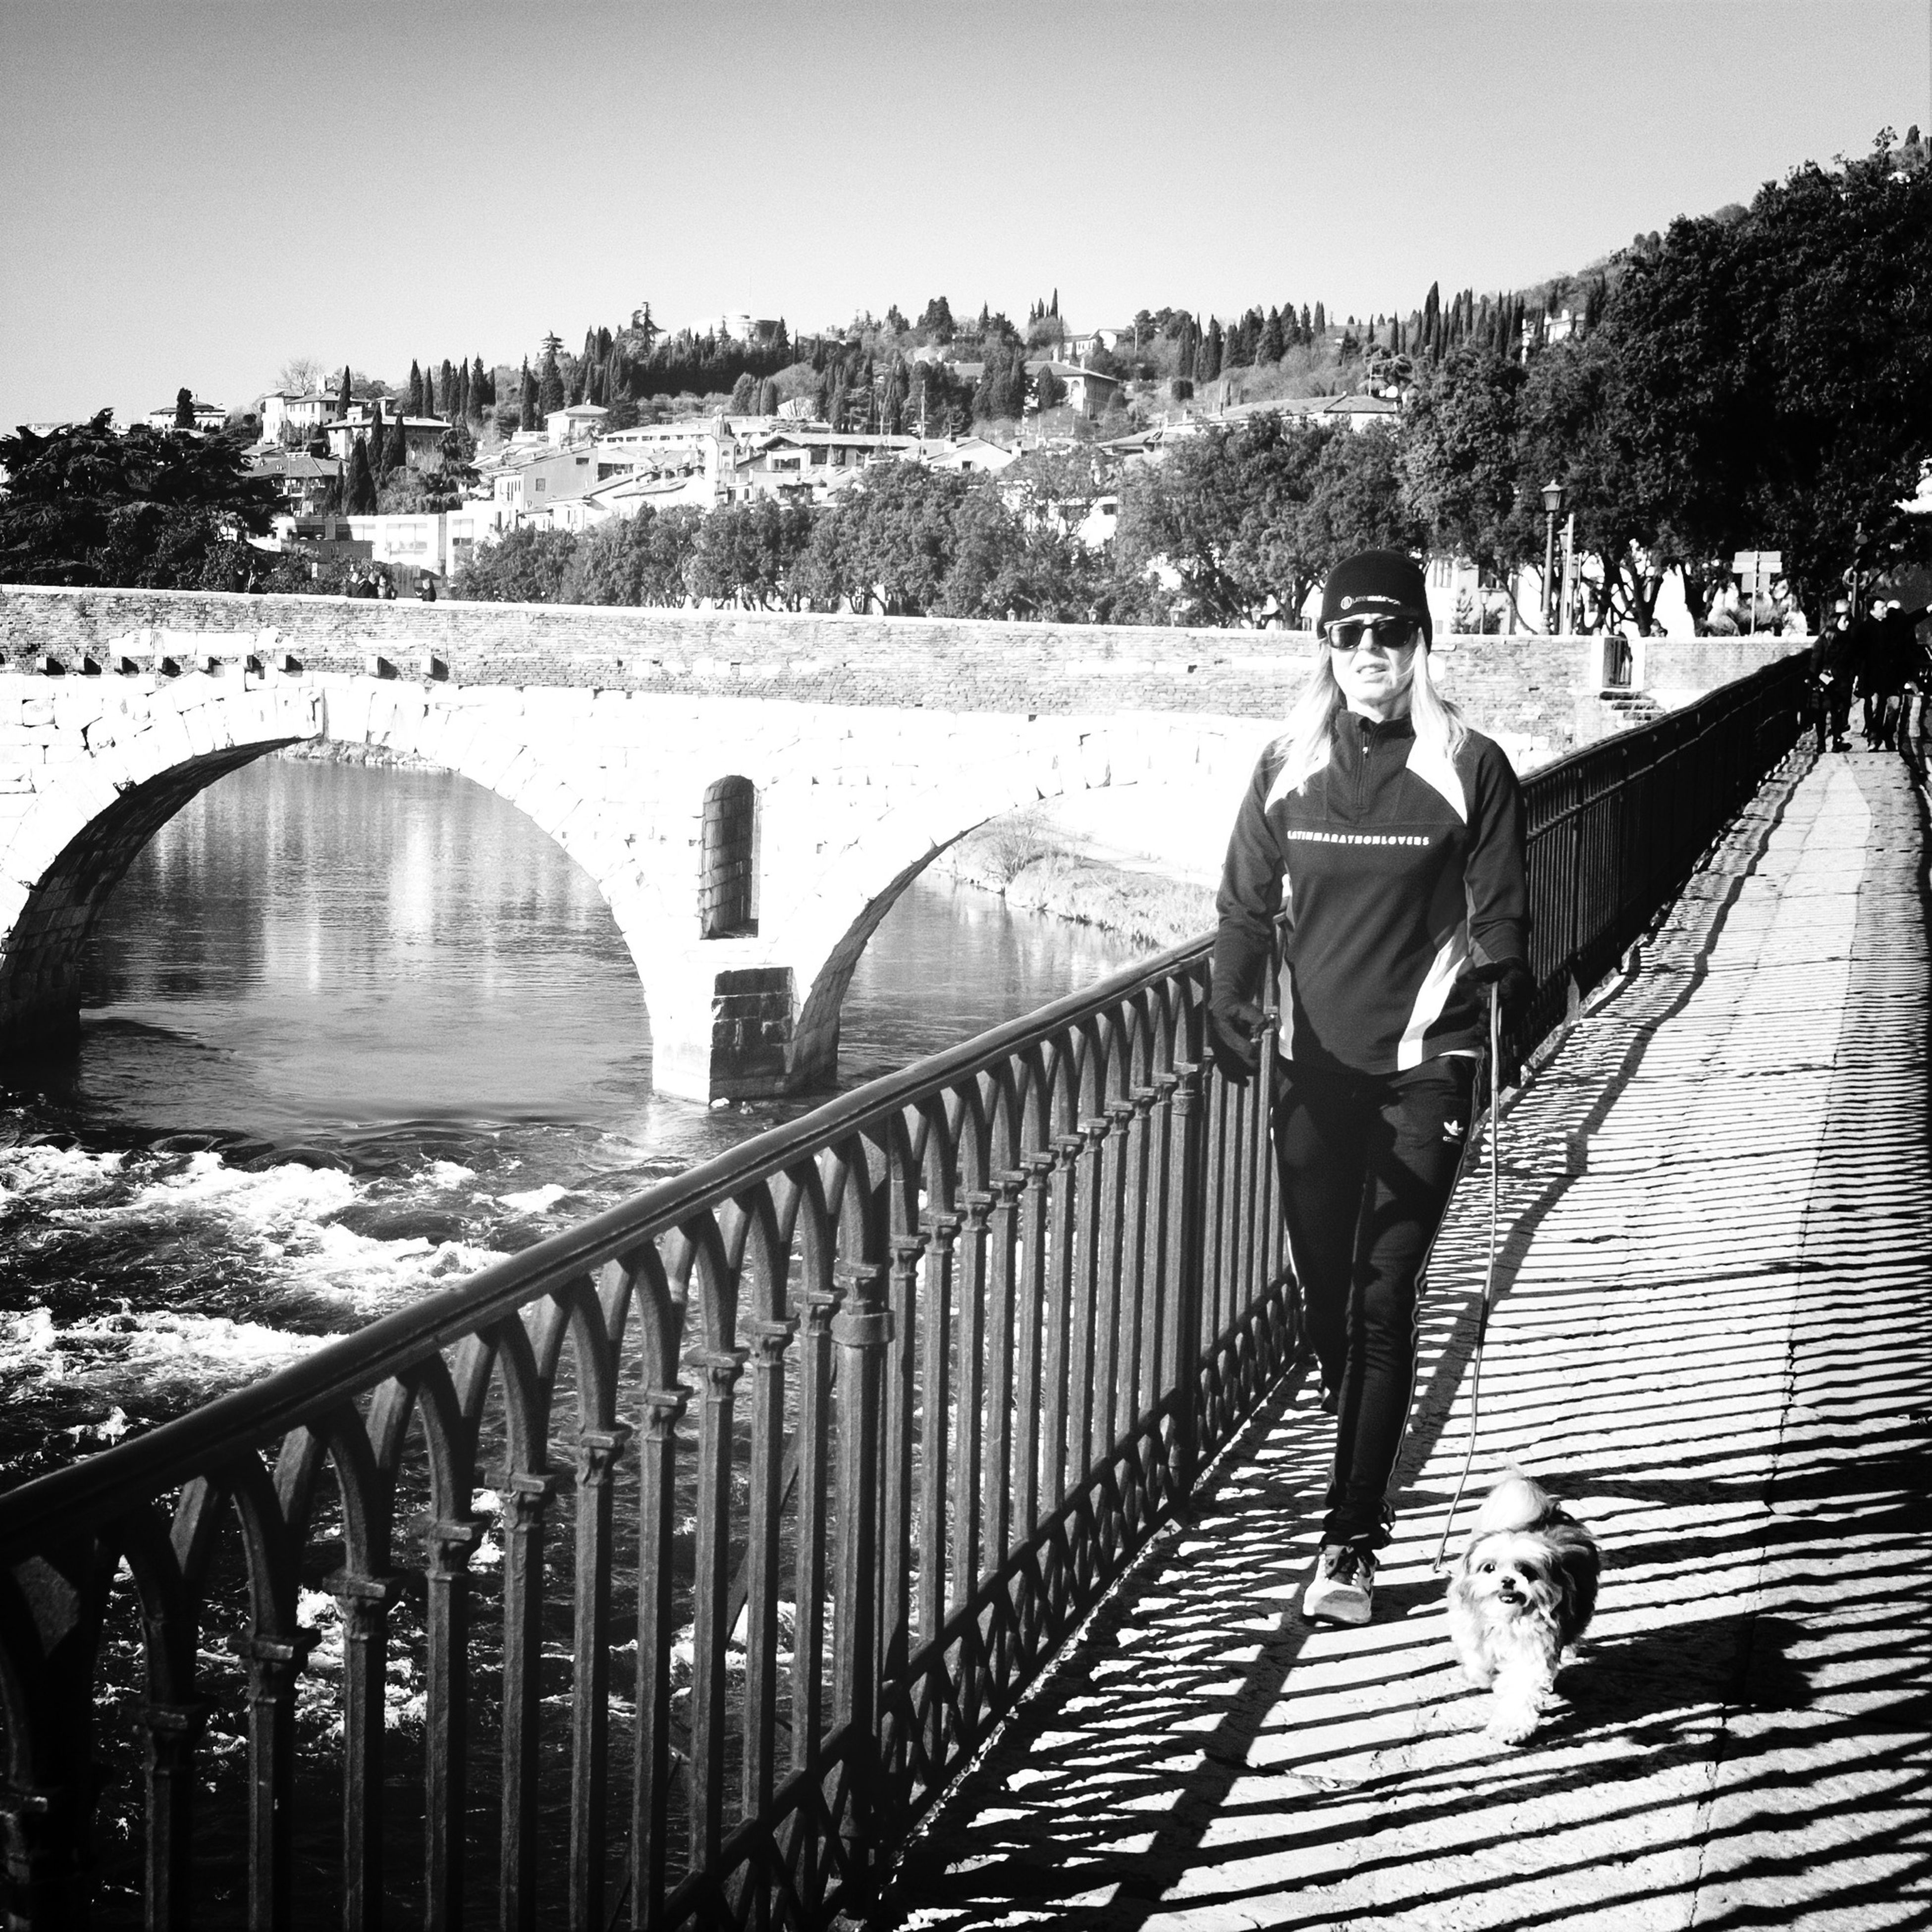 railing, lifestyles, clear sky, built structure, bridge - man made structure, architecture, leisure activity, connection, full length, men, transportation, casual clothing, building exterior, river, water, walking, standing, rear view